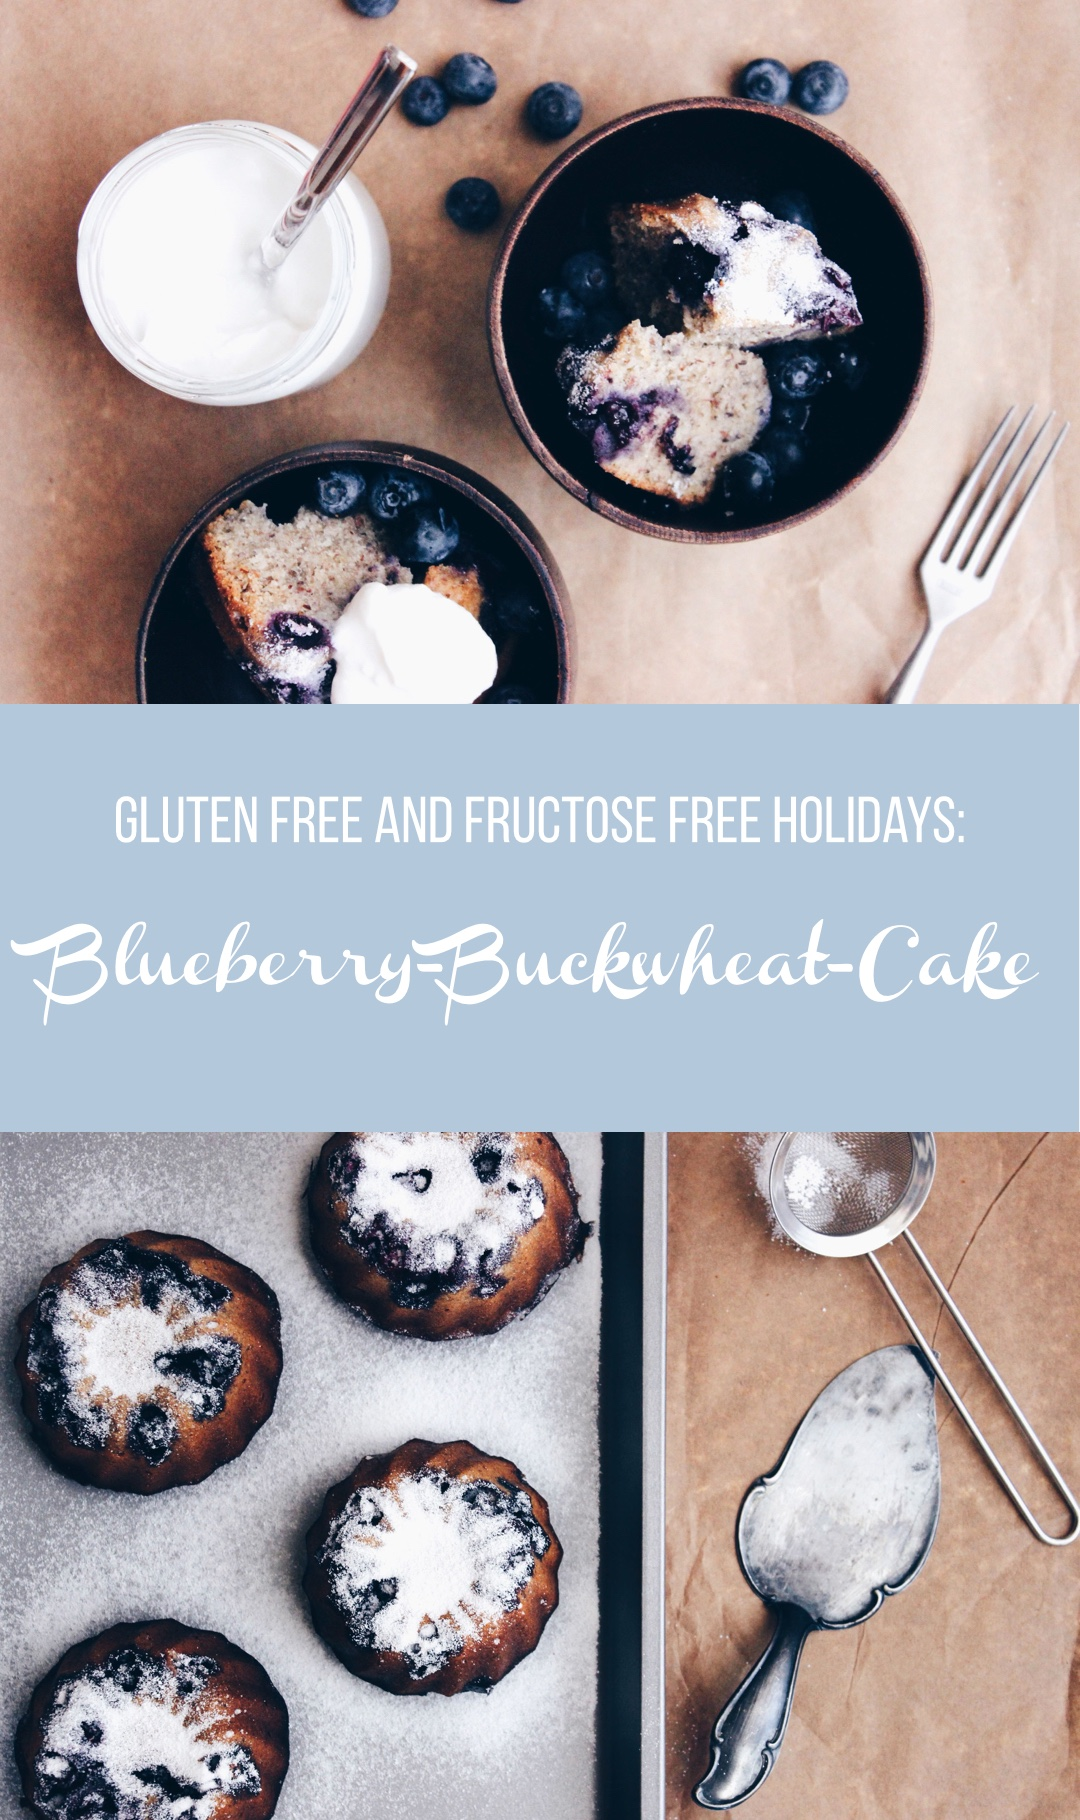 Gluten Free Easter Holidays: Fructosefree Blueberry-Buckwheat-Cake with Lemon Curd // Gluten-freie Ostern: Fructosearmer Heidelbeer-Buchweizen-Kuchen mit Zitronencreme // by fructopia.de #freefrom #foodsensitivities #holidaybaking